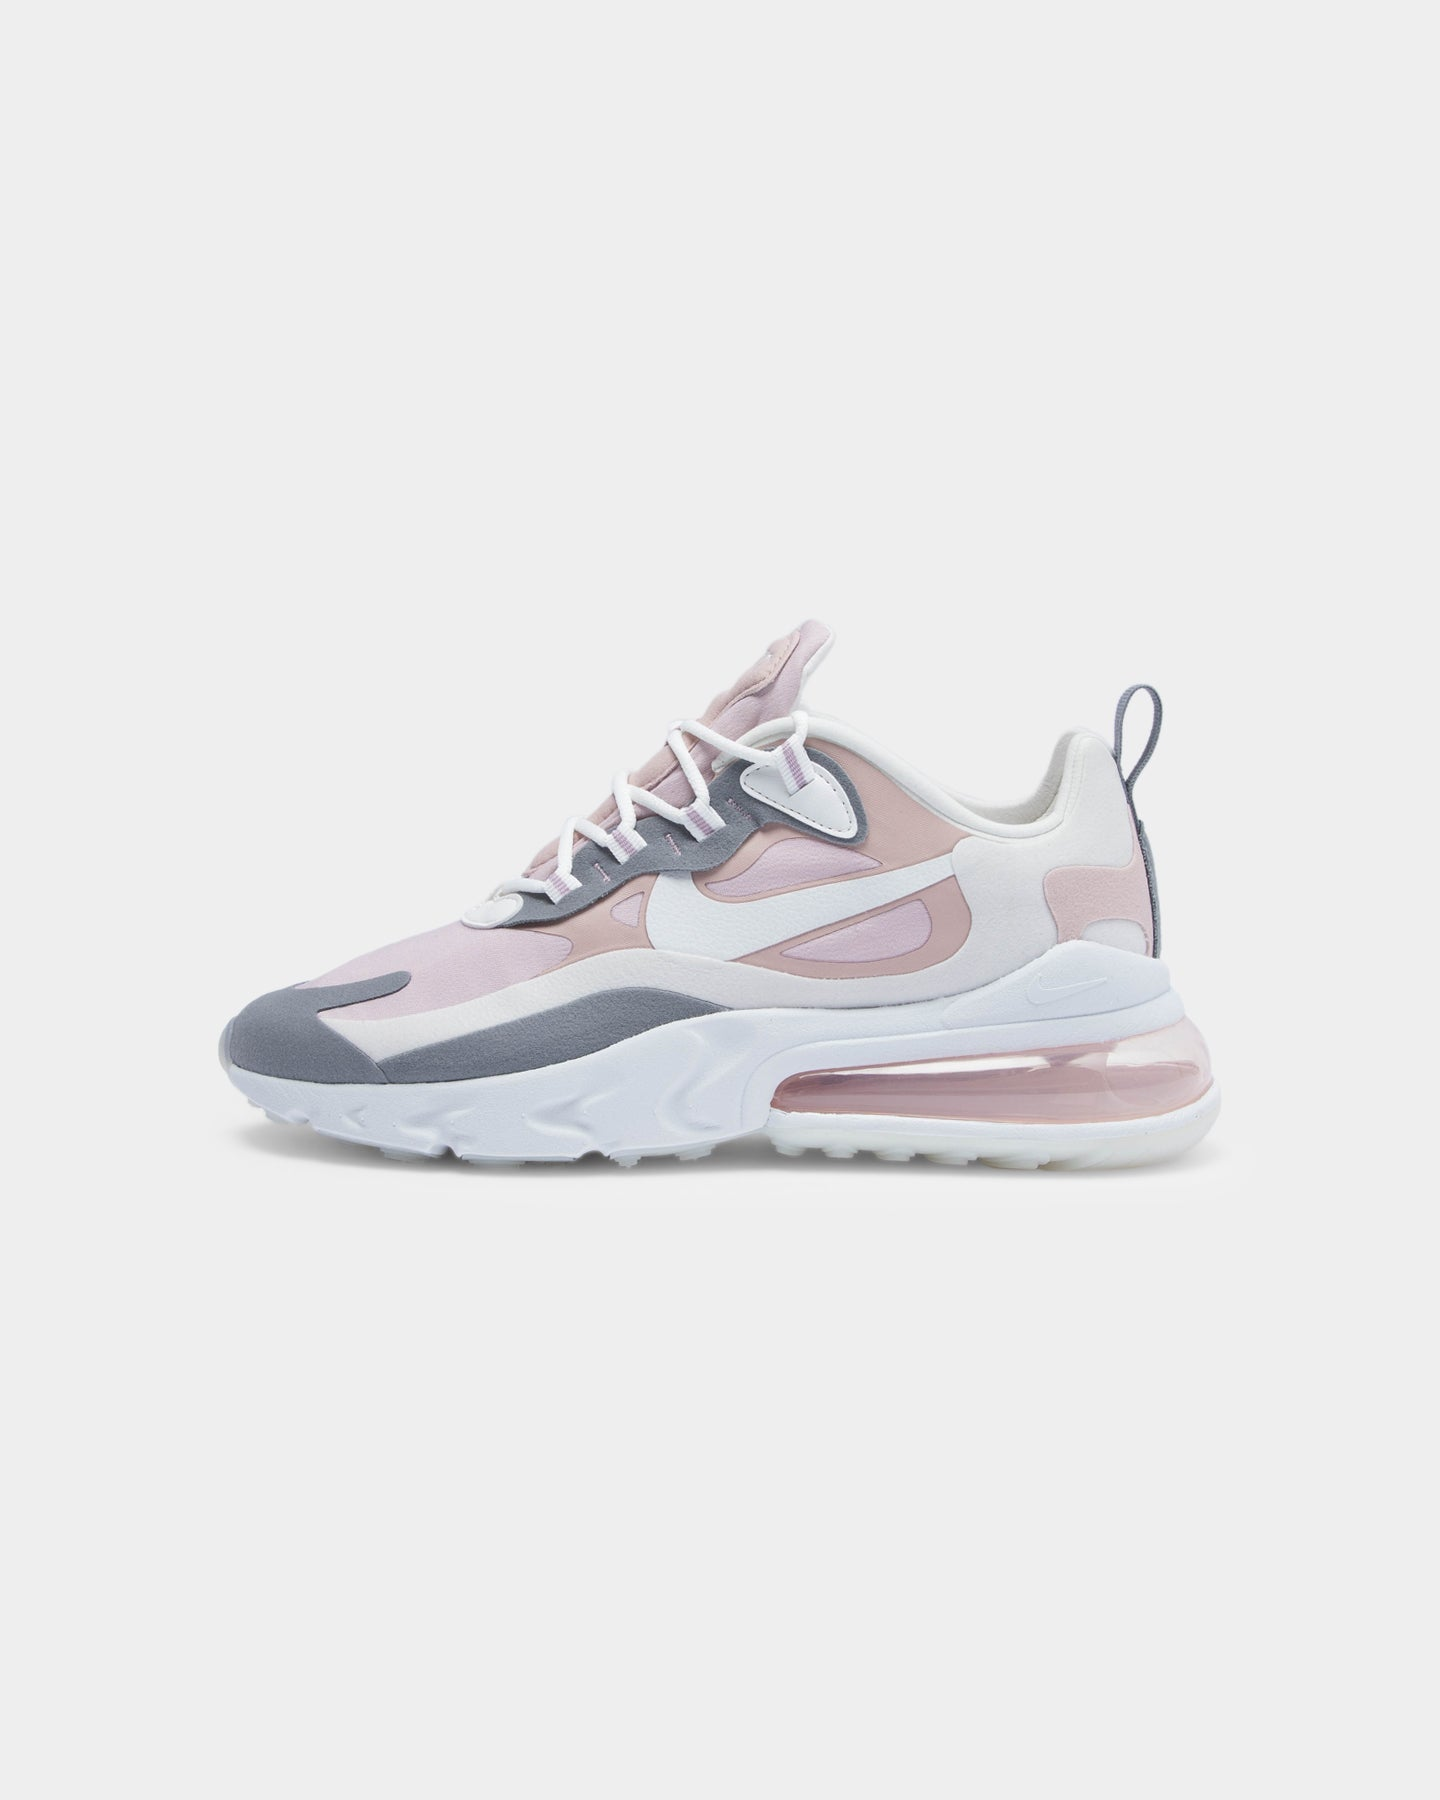 Don't Miss This Deal: Women's Nike Air Max 270 Premium